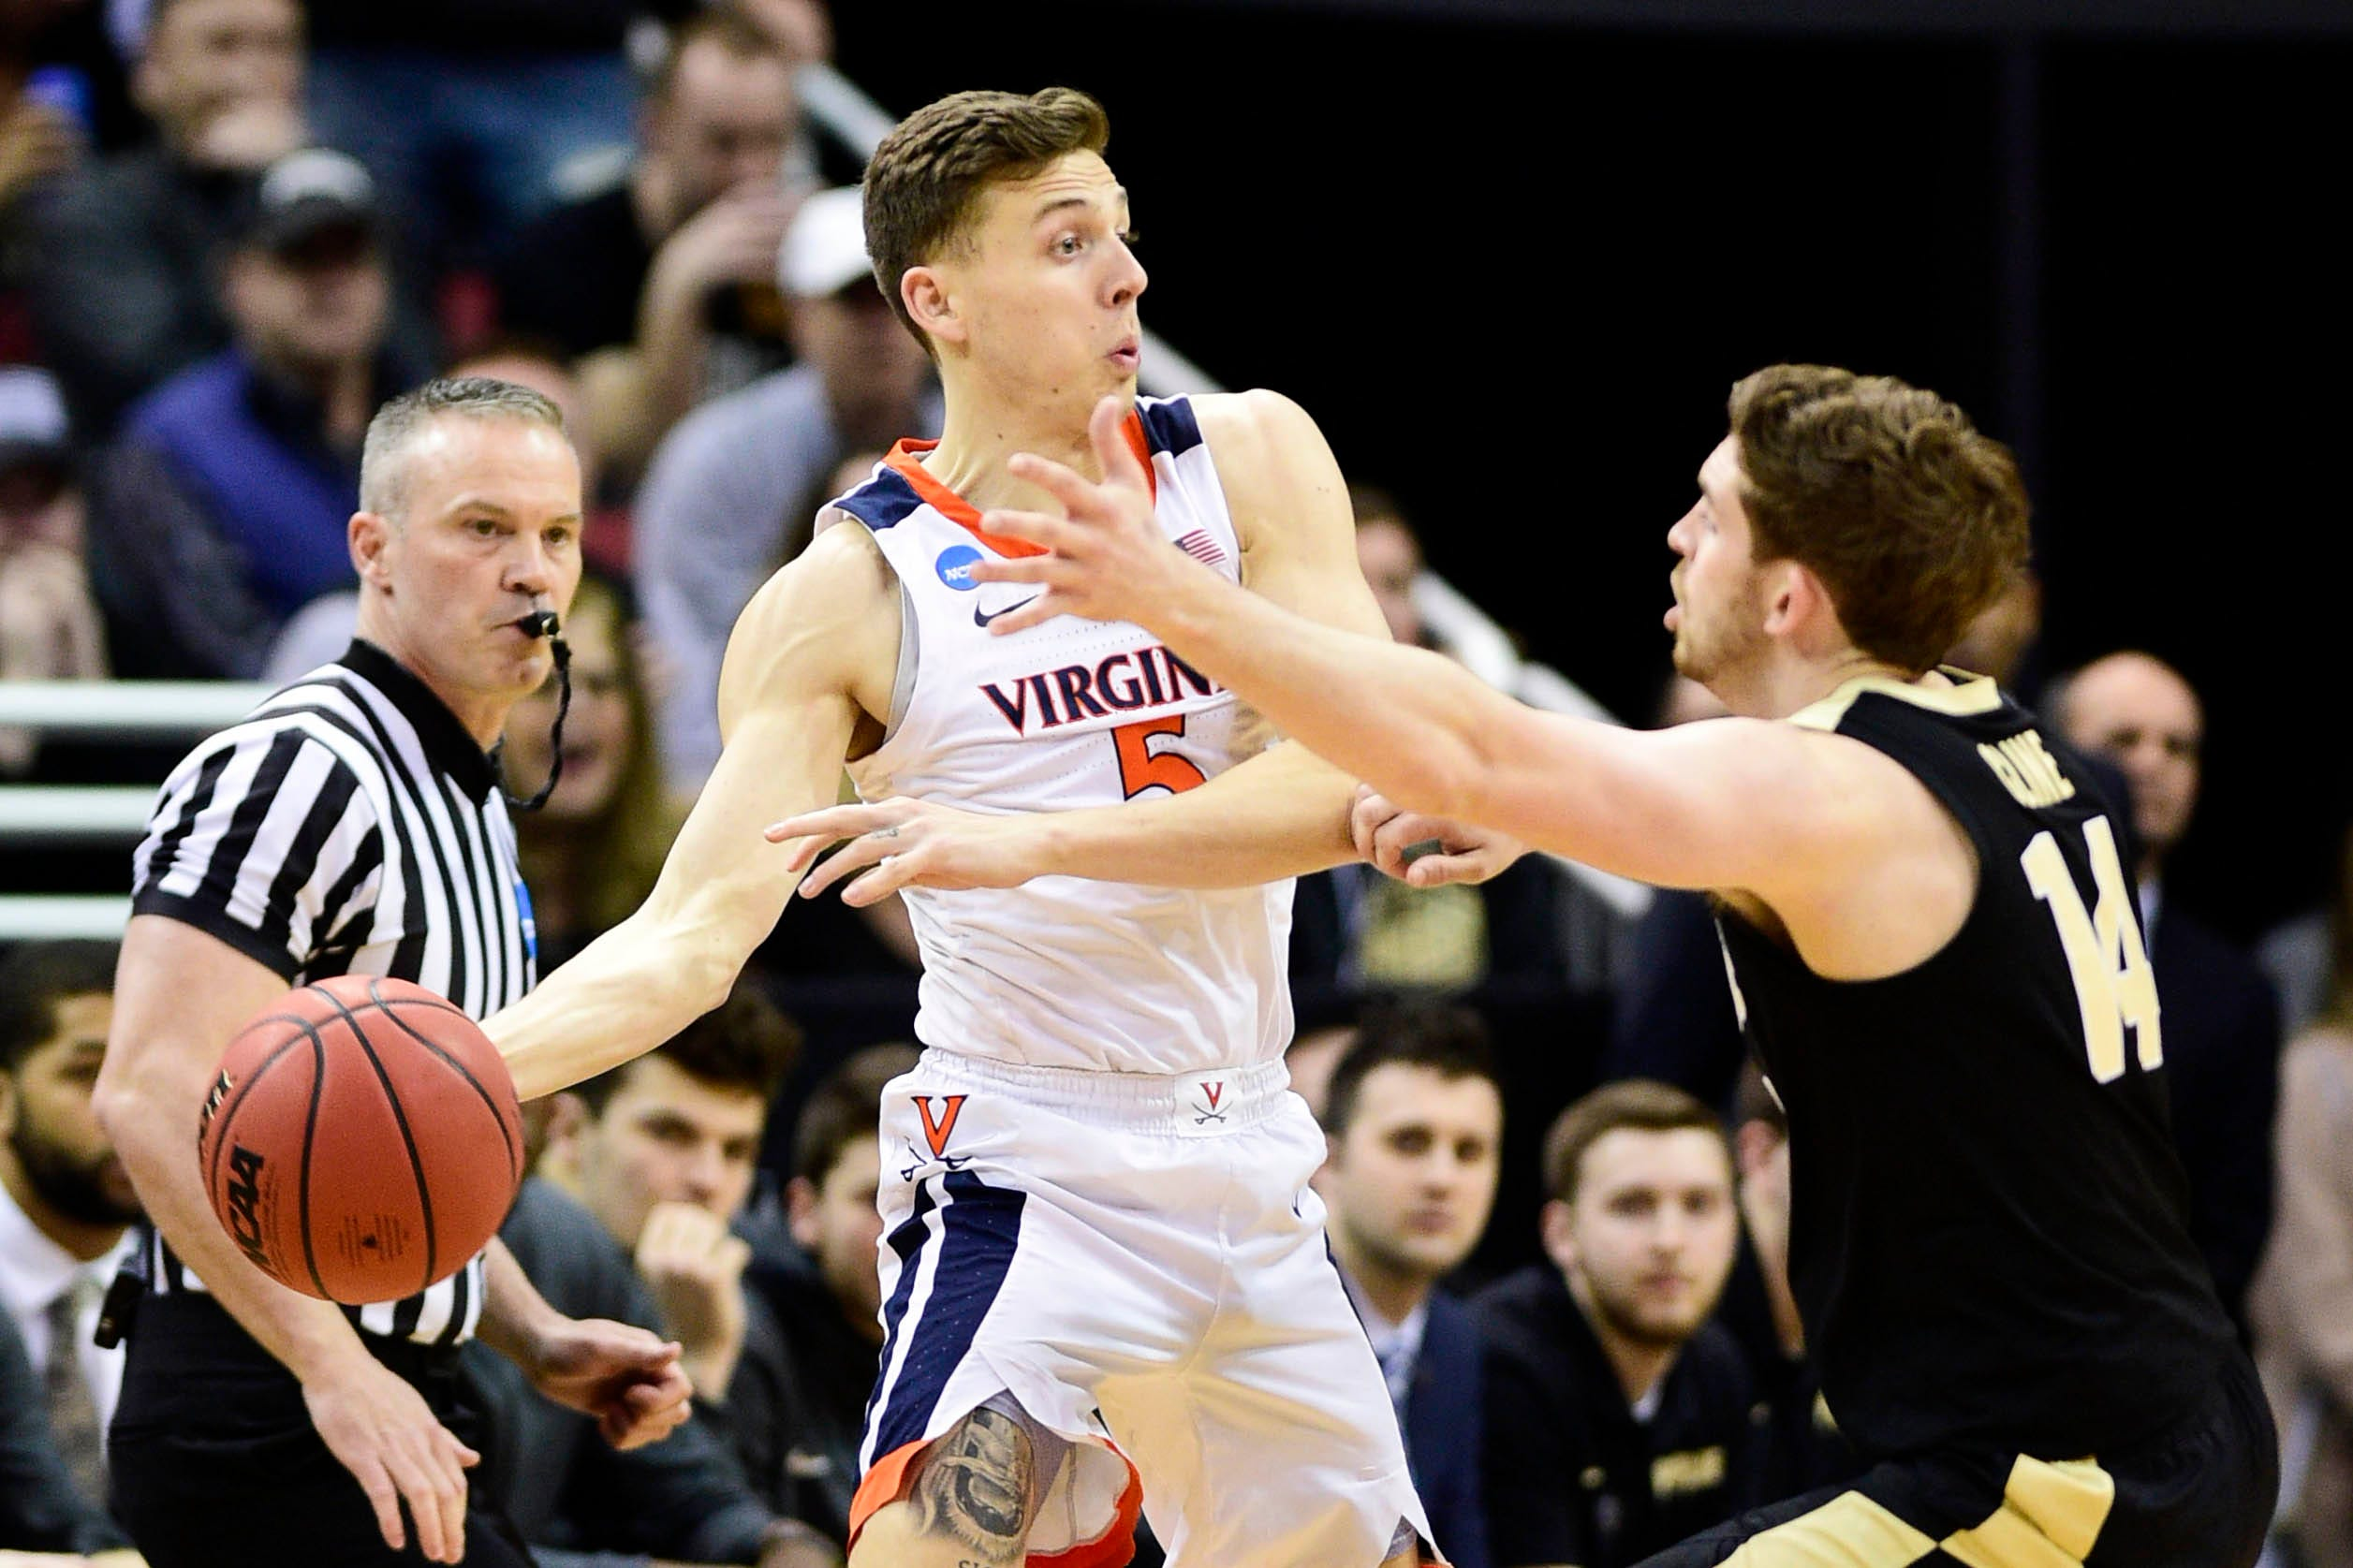 Virginia earns first Final Four spot since 1984, winning classic overtime thriller with Purdue